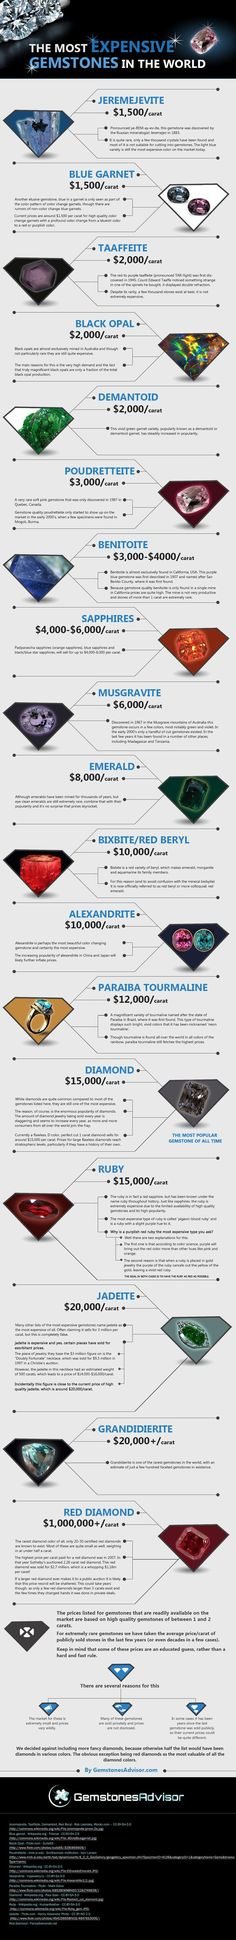 The Most Expensive Gemstones in the World Infographic - I'll take three of each one please...